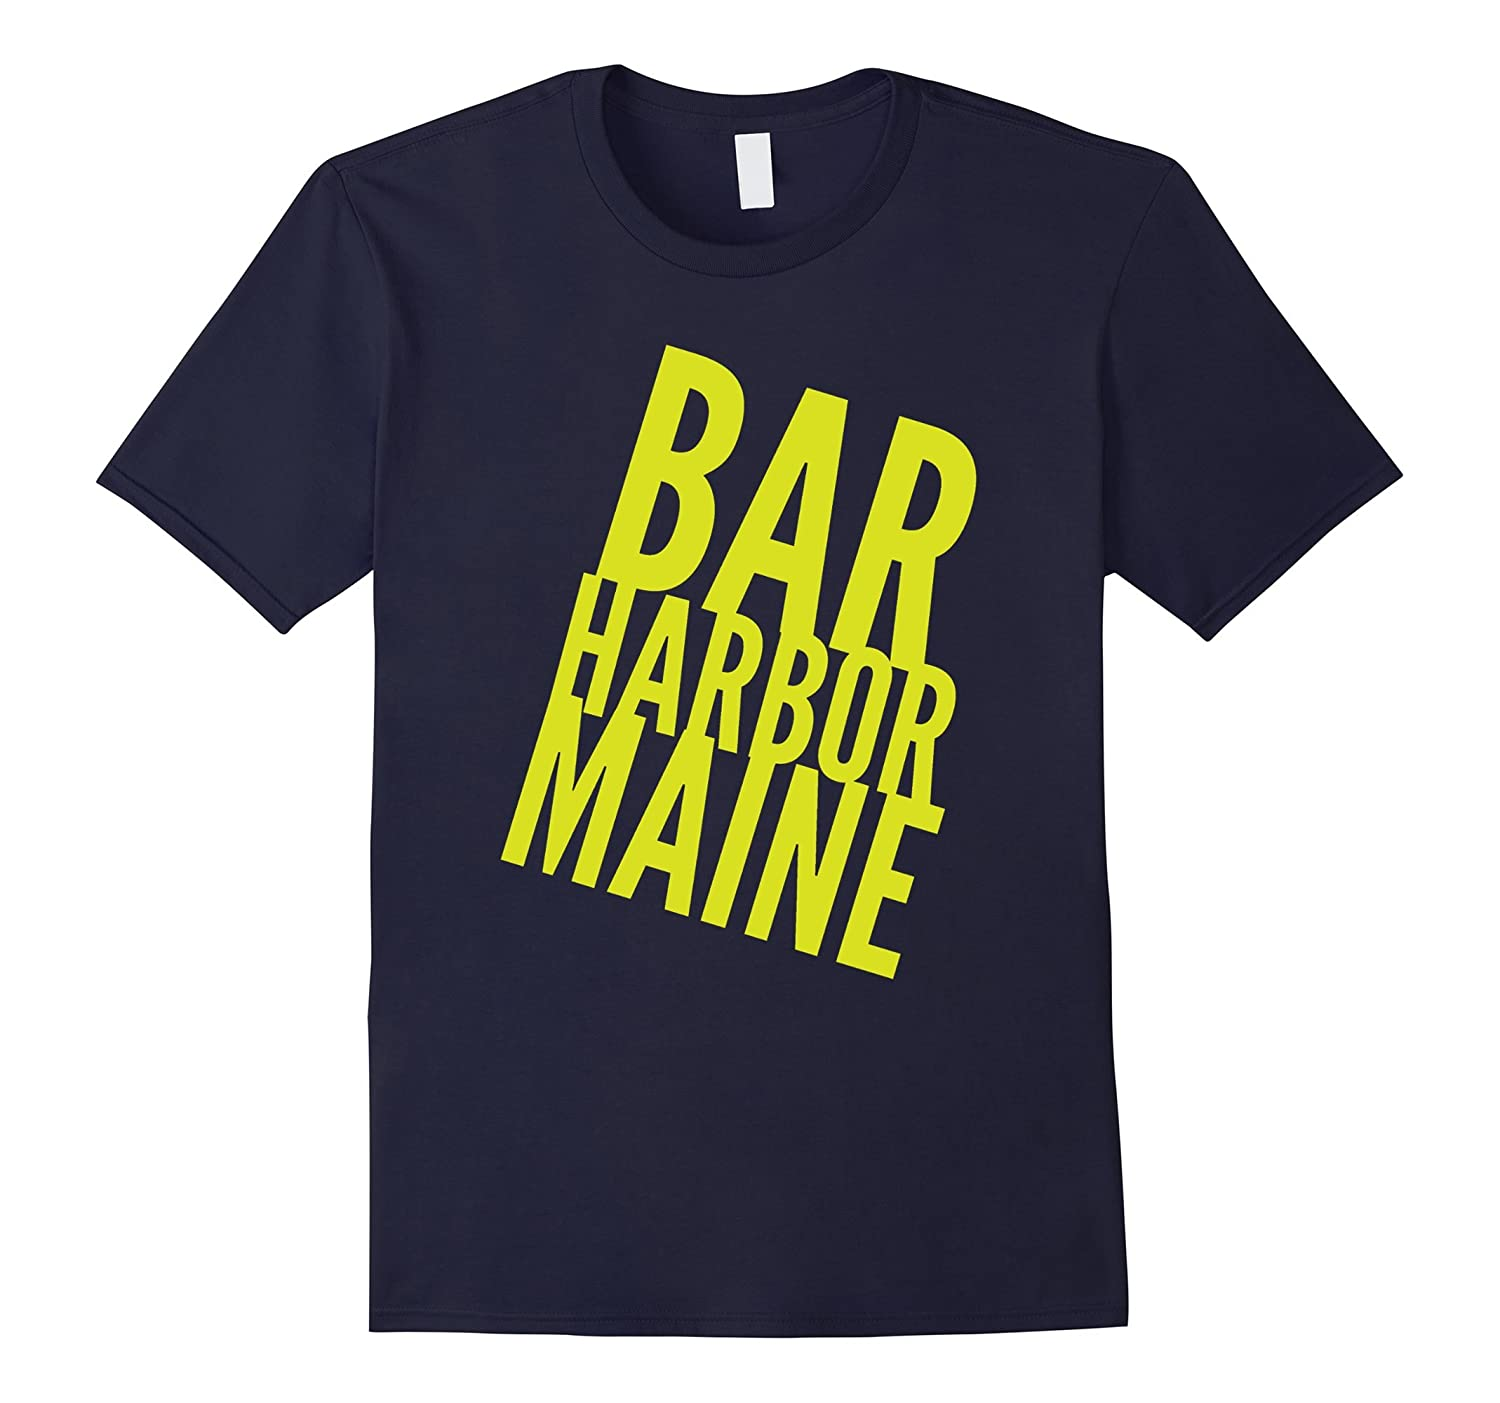 Bar Harbor Maine shirt with yellow text t-shirt-FL